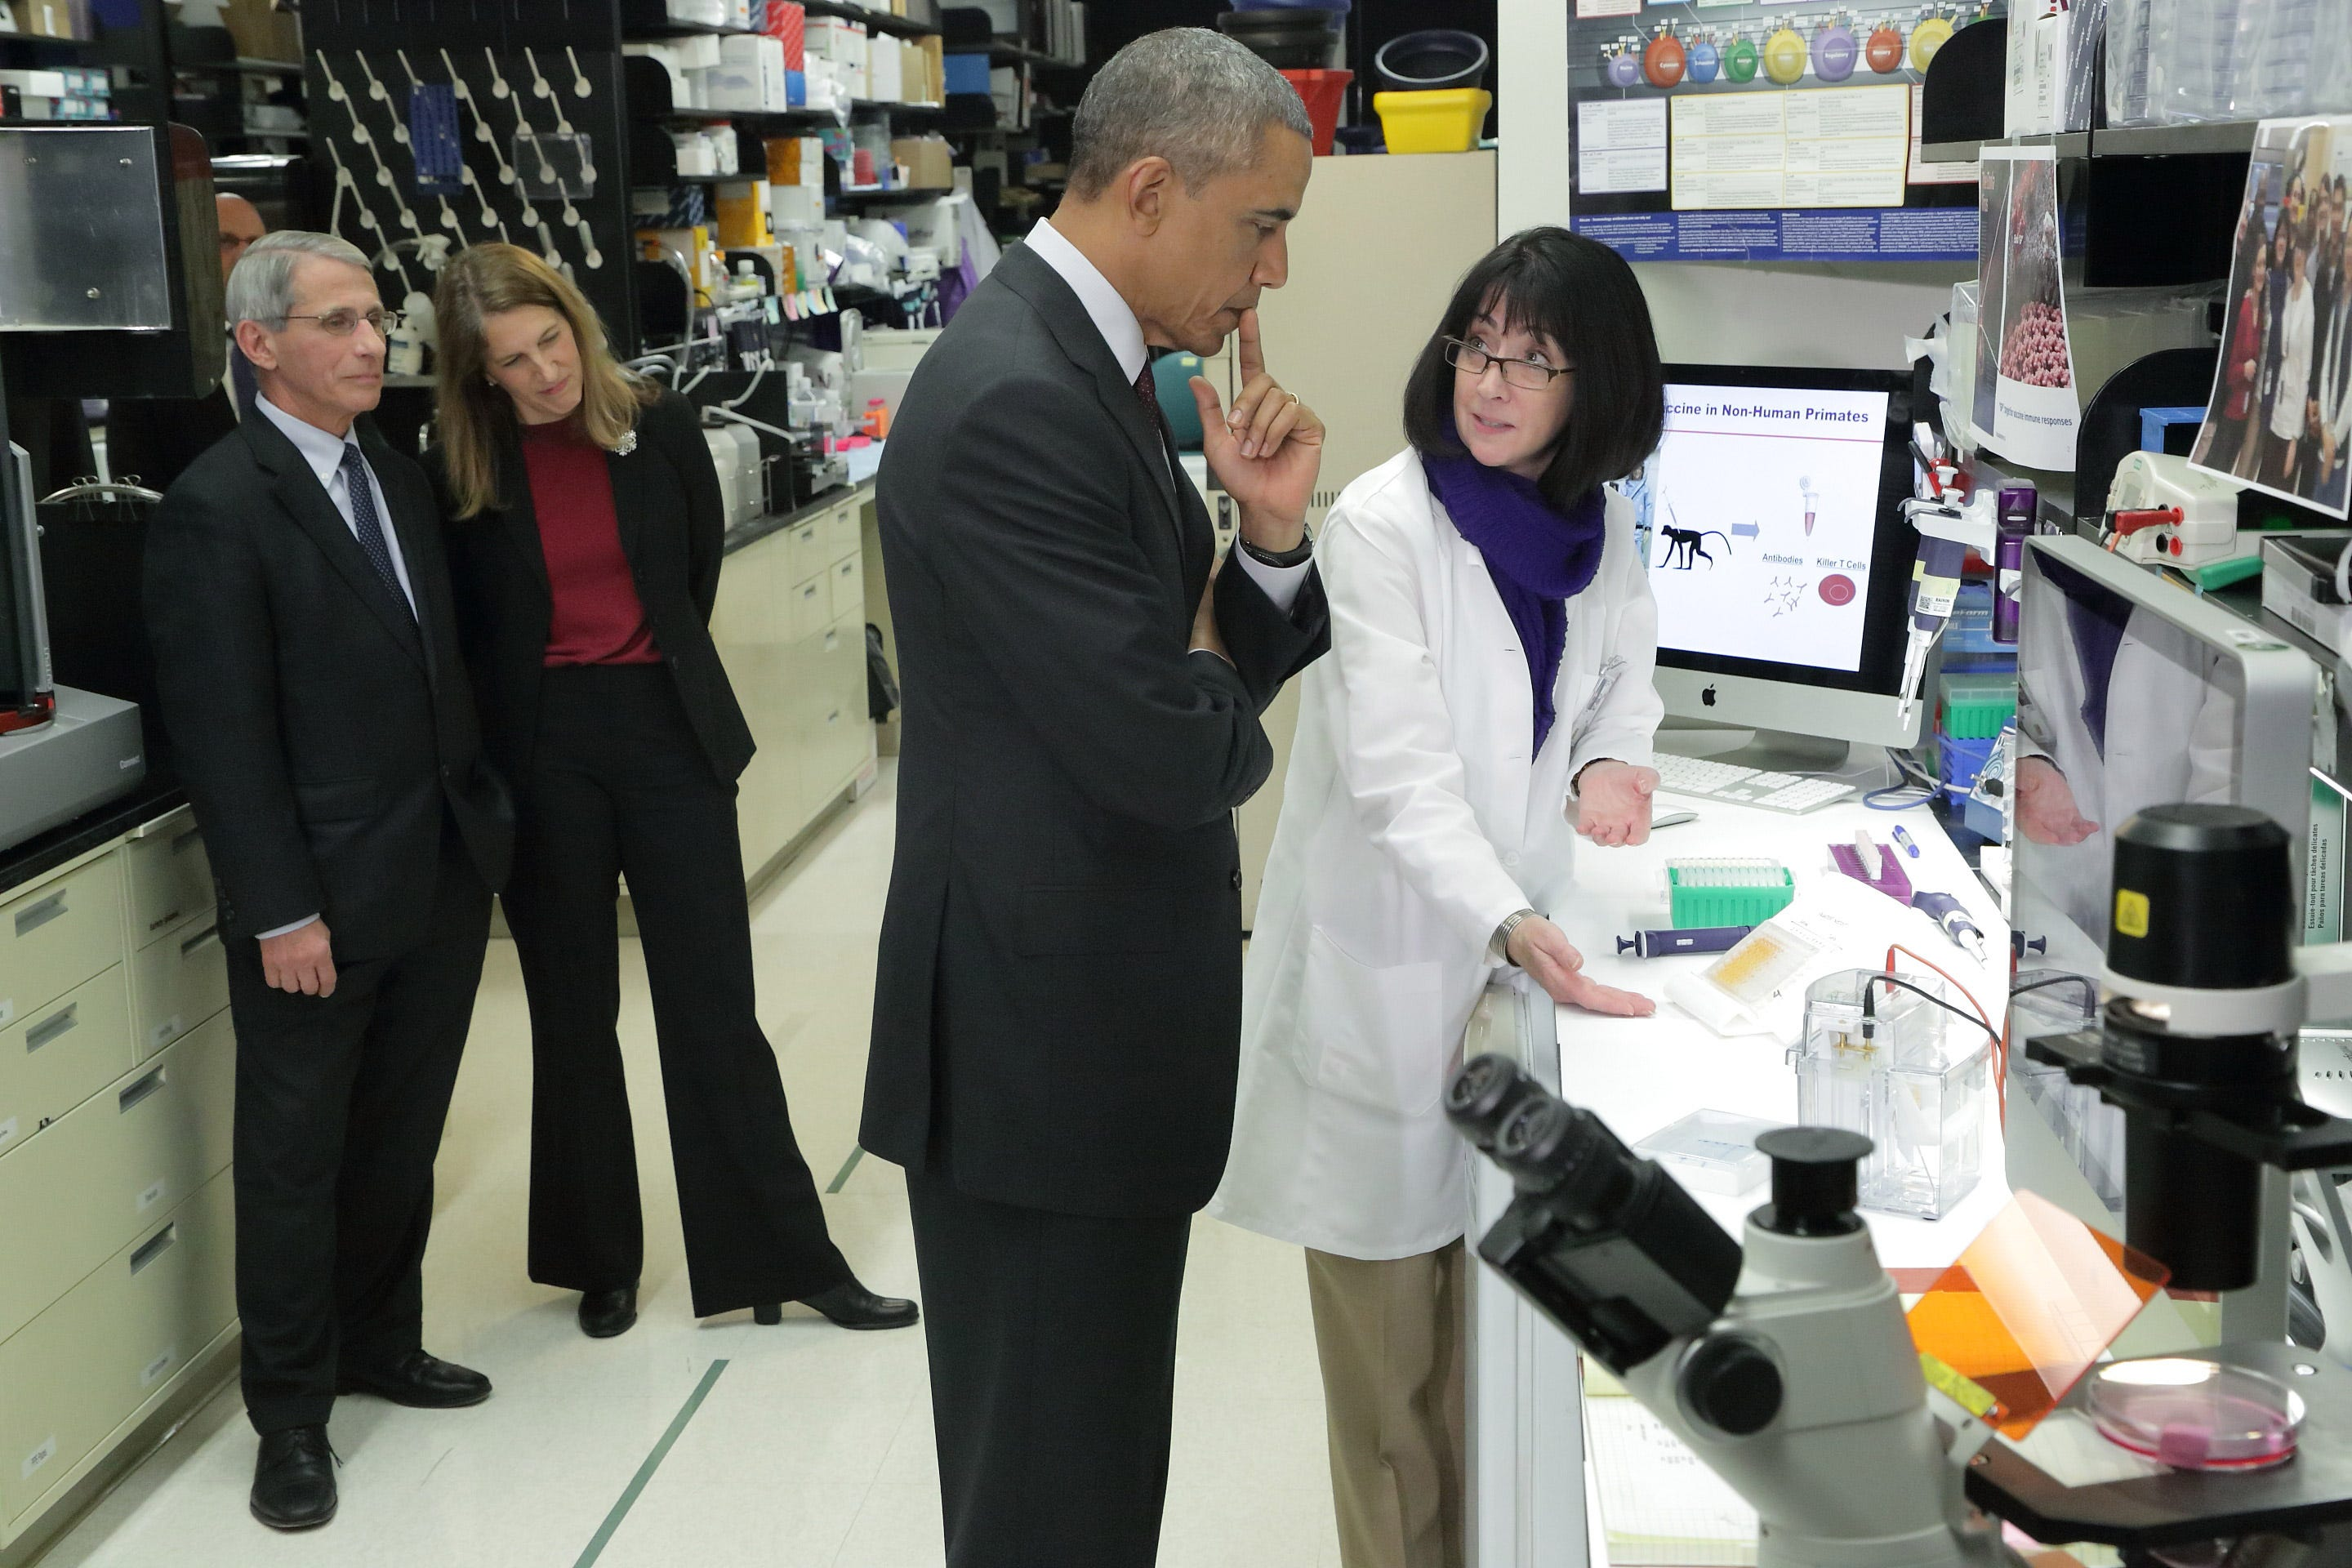 Fact check: Viral photo shows Obama, Fauci visiting NIH lab in 2014, not a  Wuhan lab  in 2015